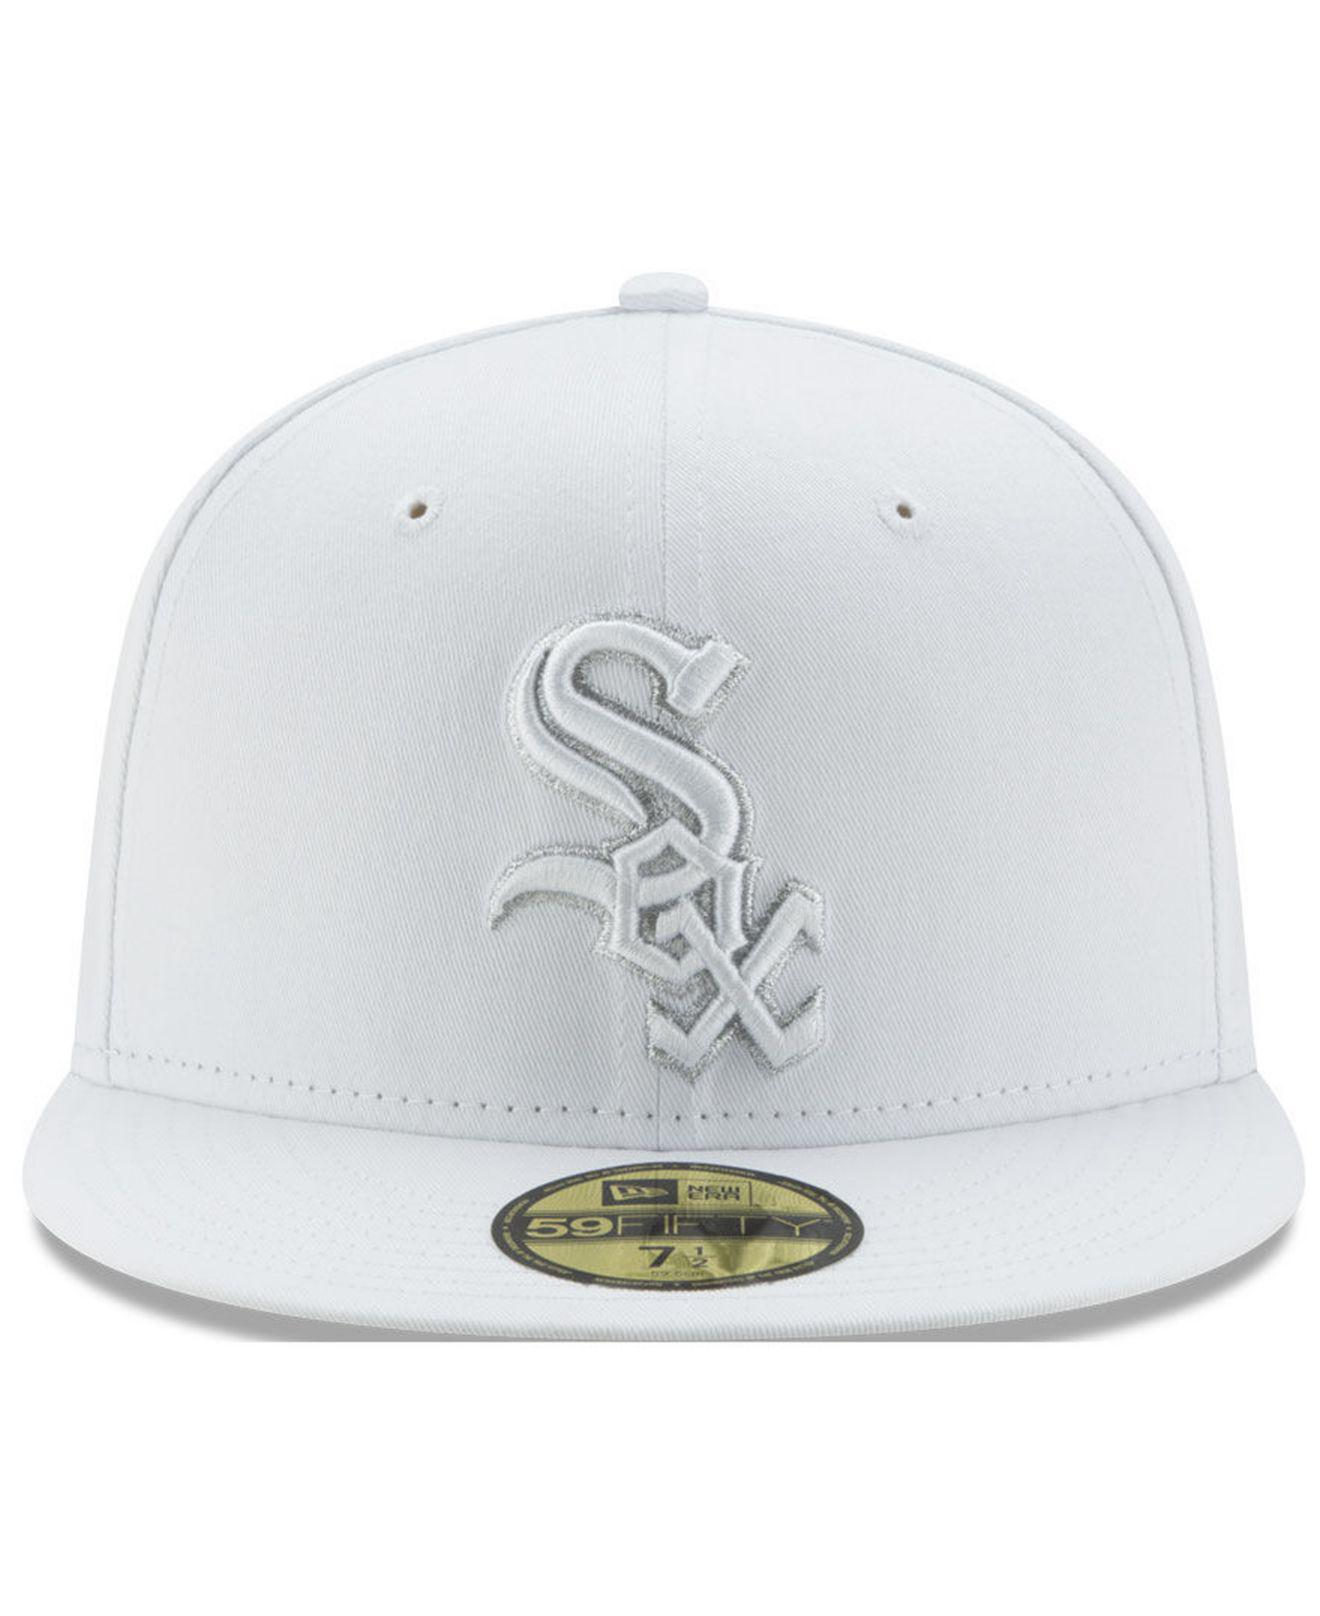 super popular 6723f 2dfa5 ... order lyst ktz chicago white sox pure money 59fifty fitted cap in white  for men 757c4